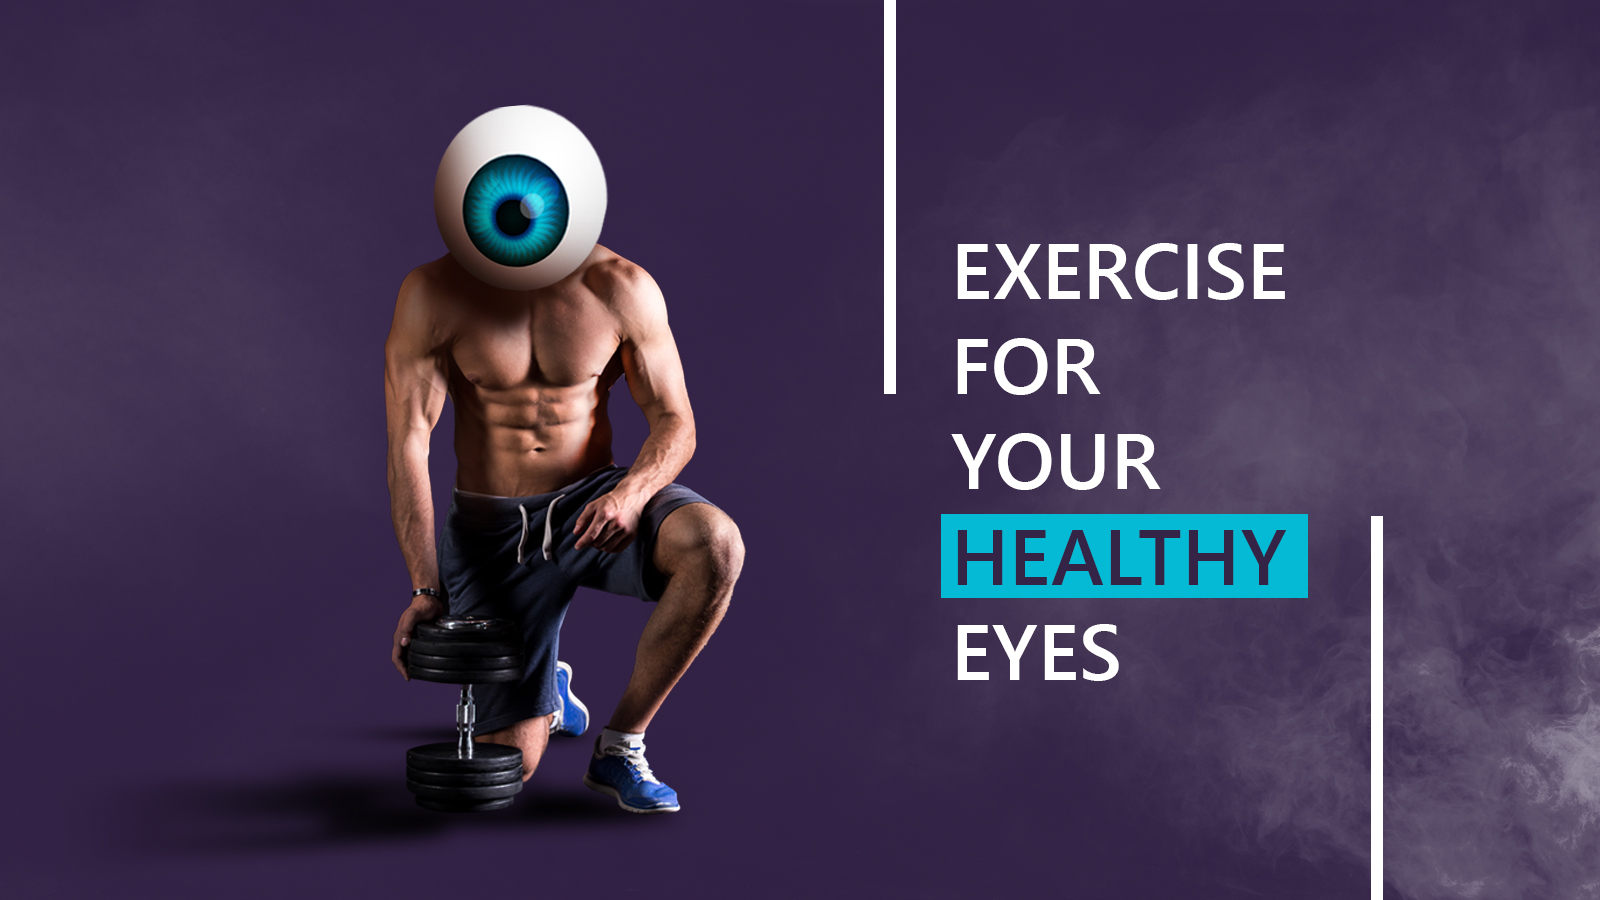 5 Eye exercises to improve vision